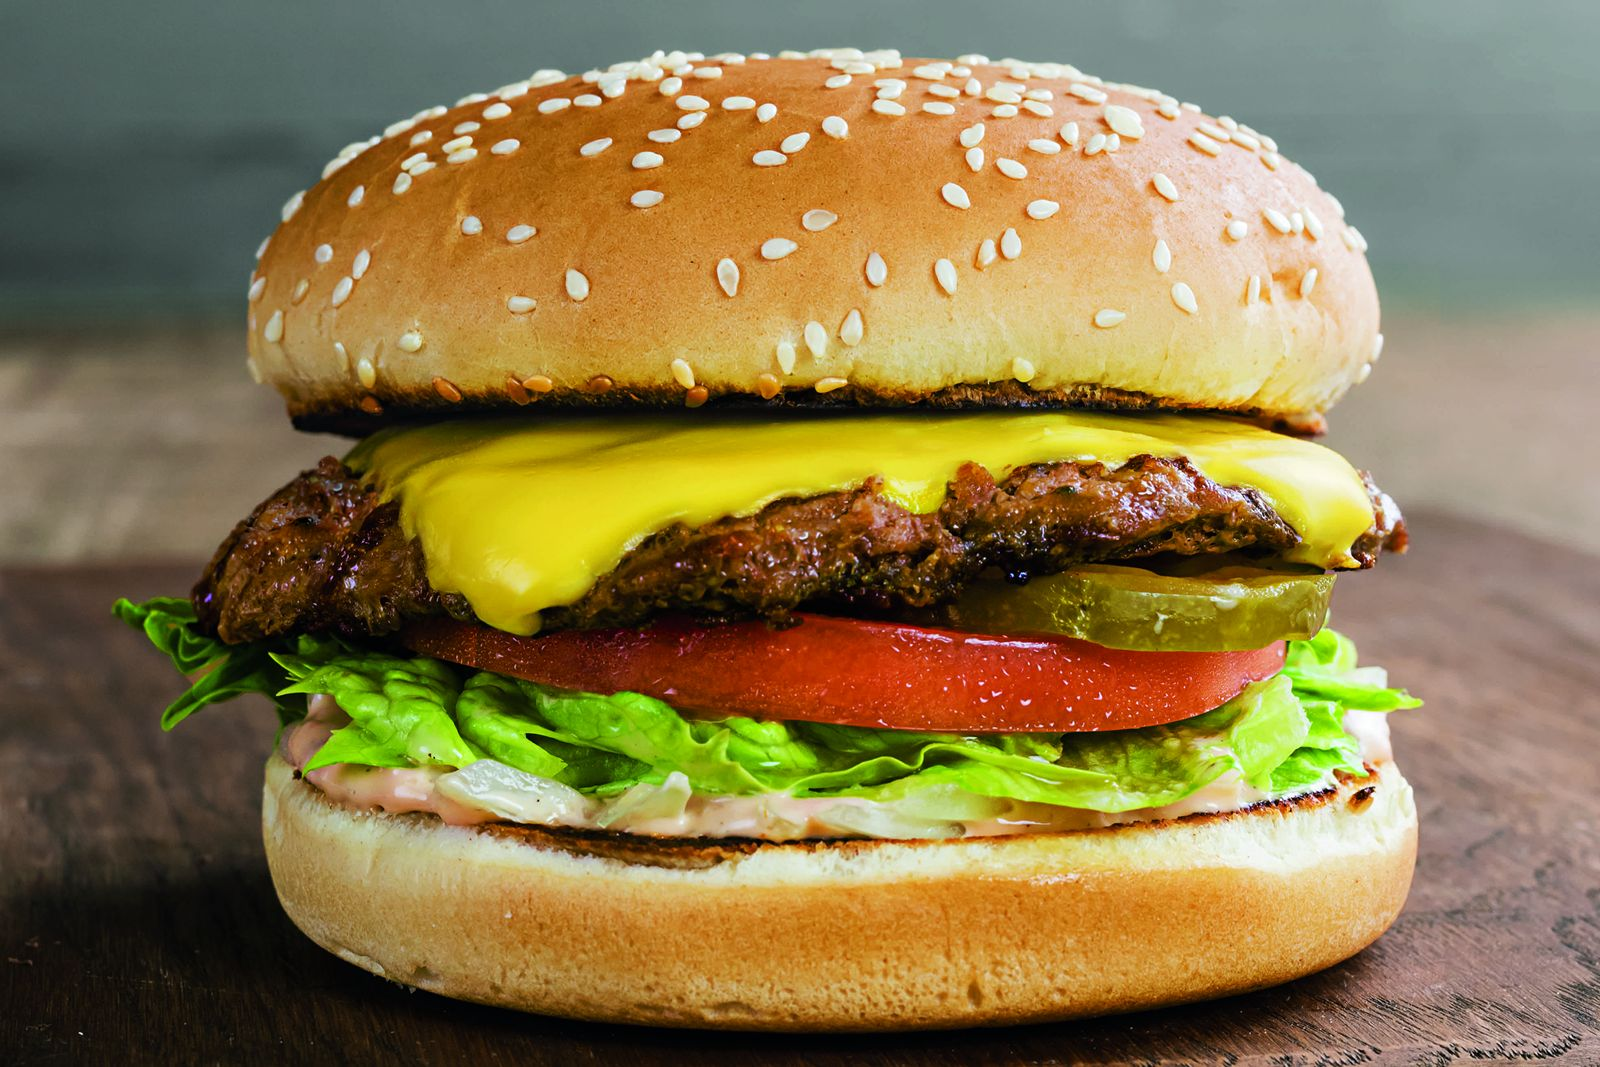 For the second year in a row, Farmer Boys restaurants in Nevada will be hosting an in-store fundraiser from July 23 through September 2 in support of UMC Children's Hospital. Guests who donate $1 to the fundraiser will receive $1 off their next visit, and guests who donate $5 will receive a free Big Cheese burger on their next visit.